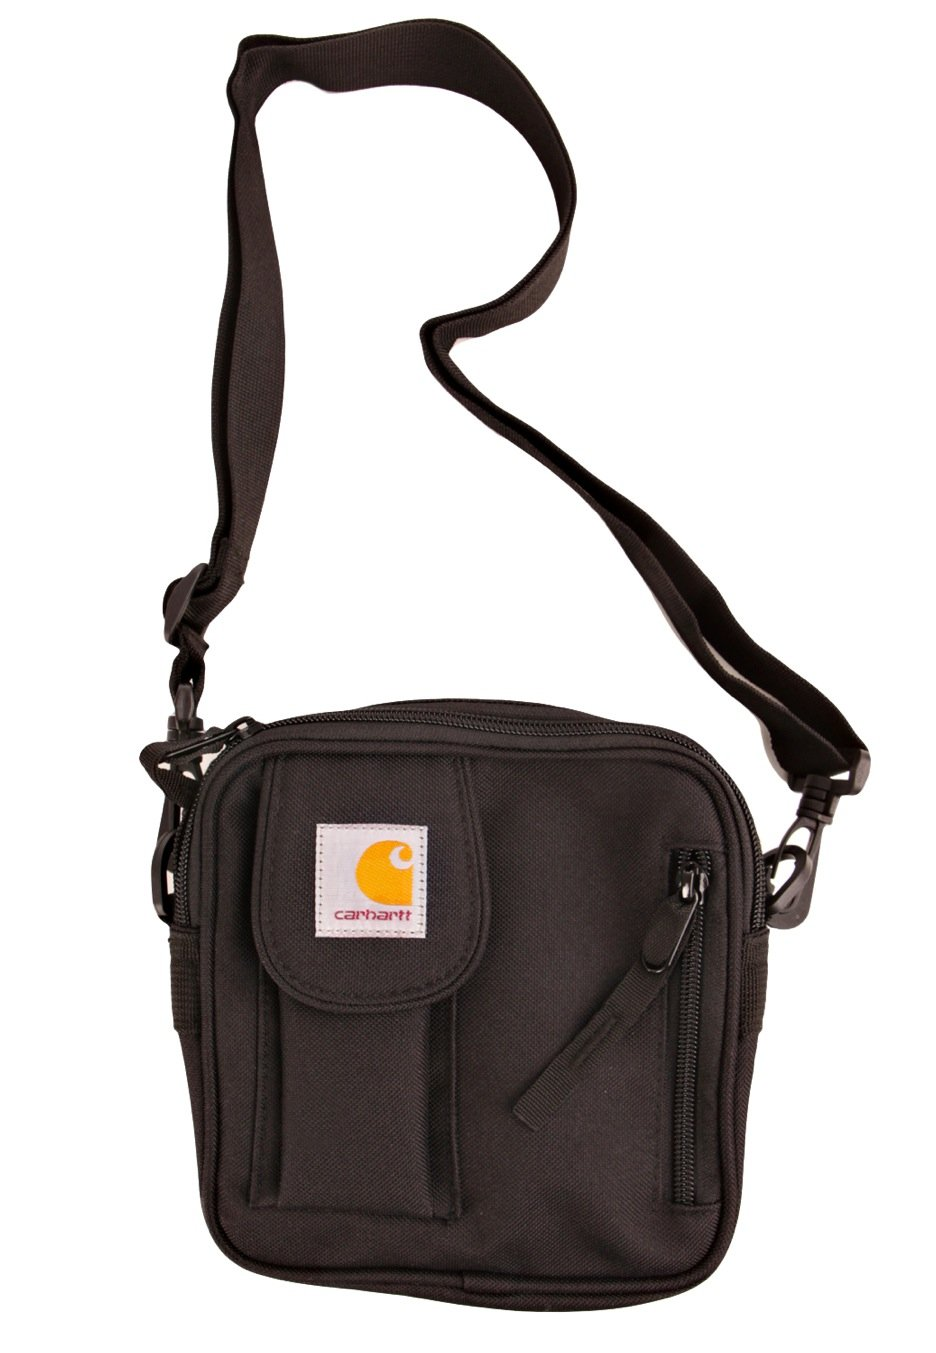 Carhartt Wip Essential Small Bag